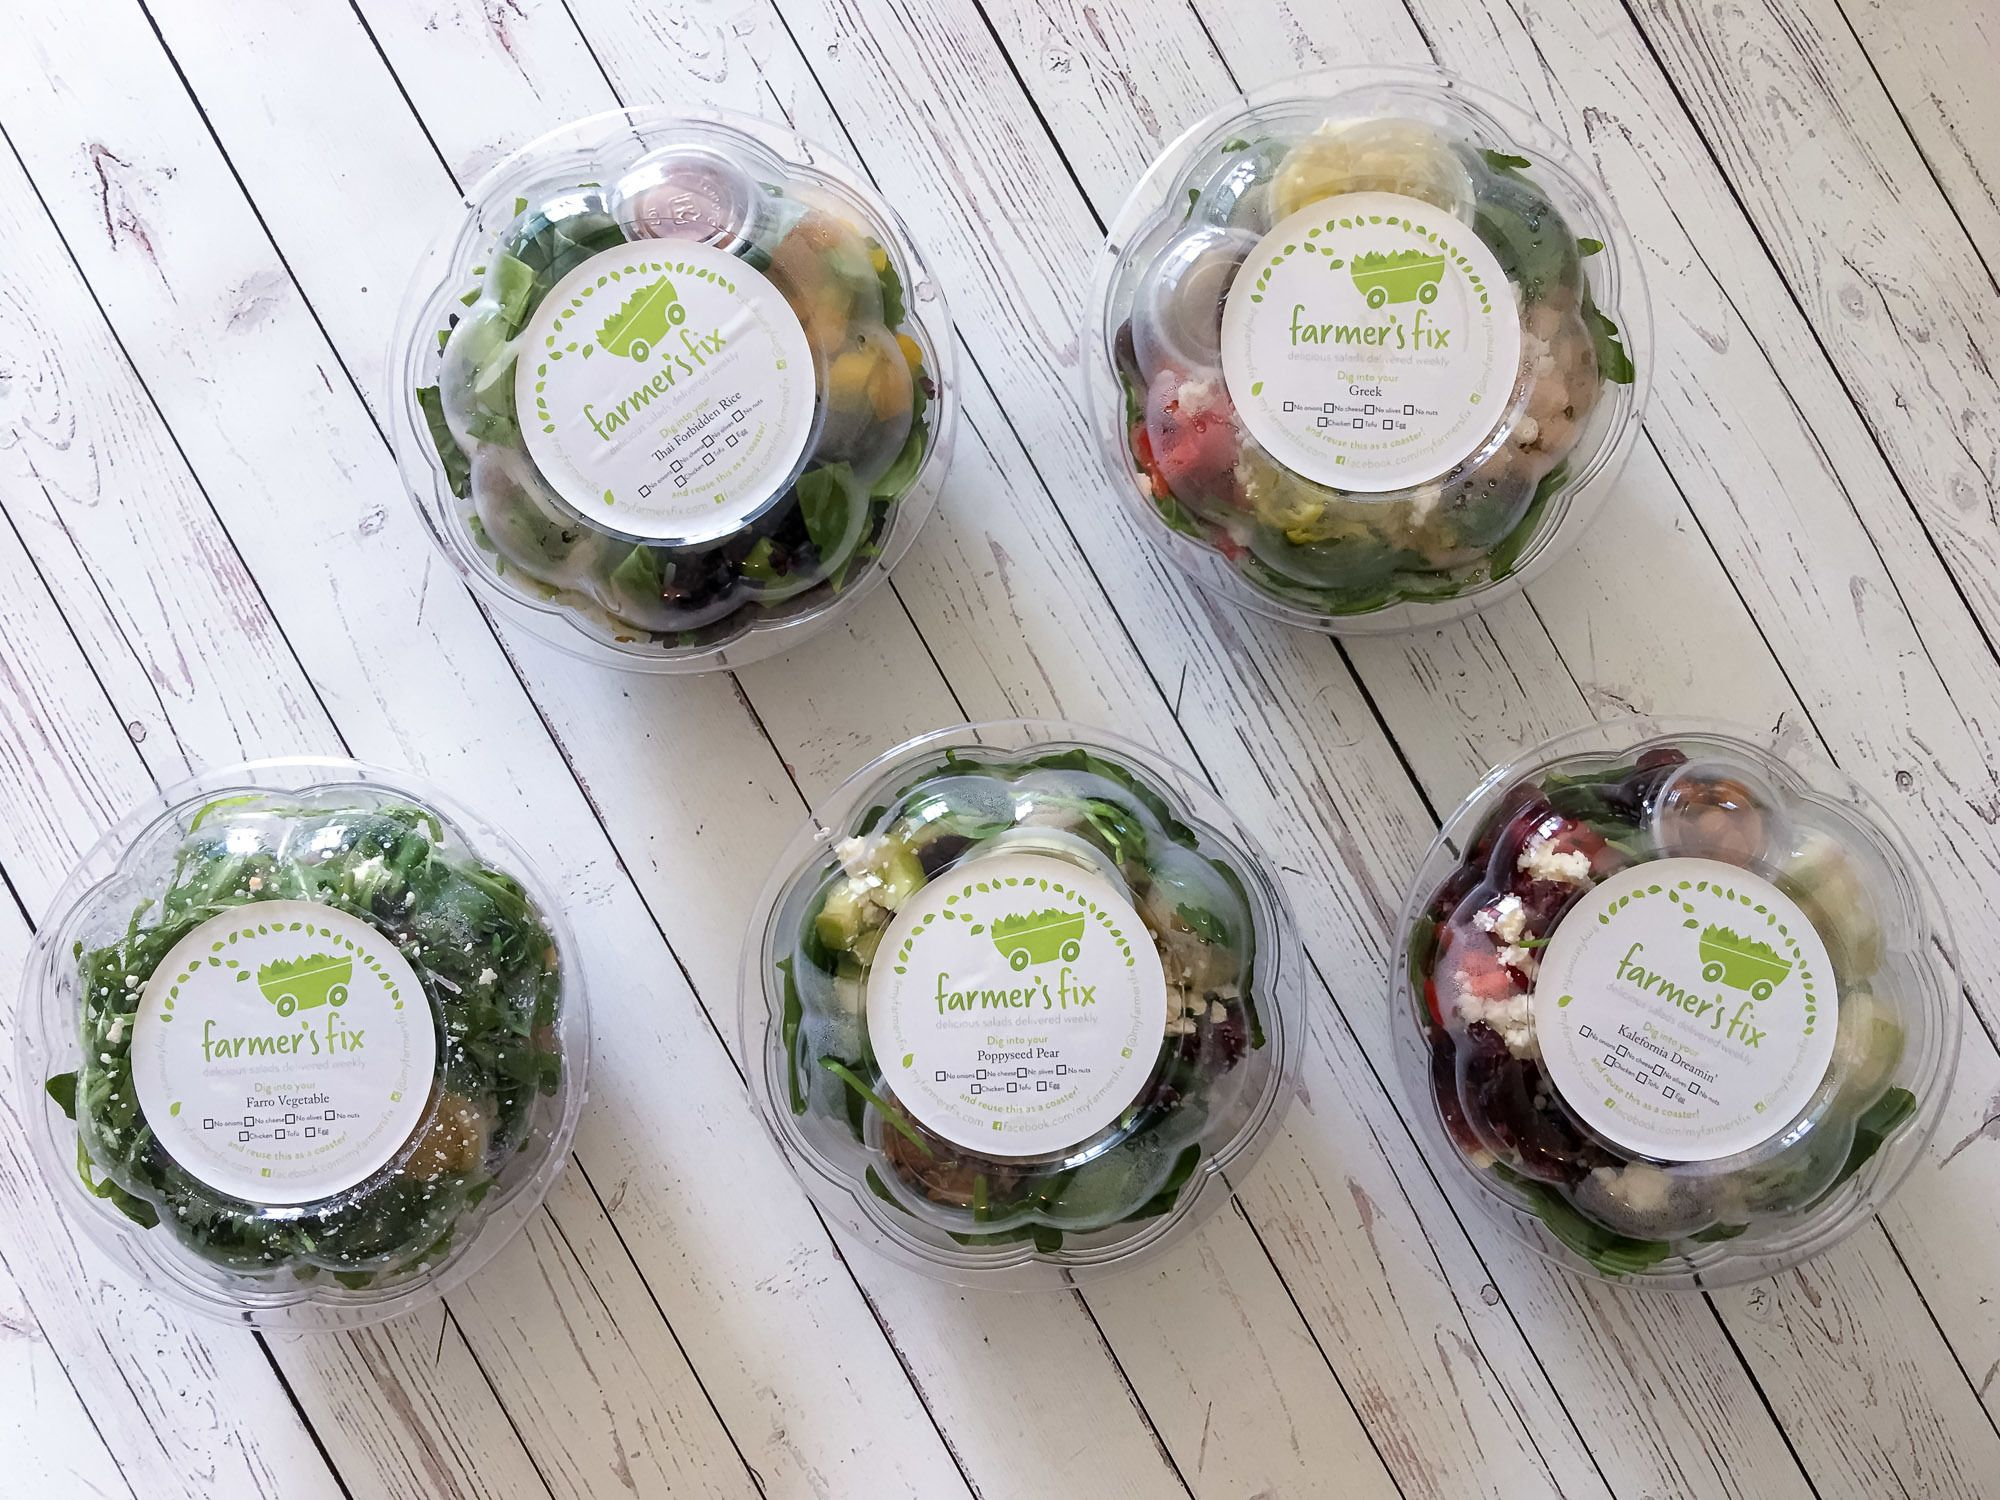 Farmer's Fix salads in their packaging. I love this San Diego salad delivery company.